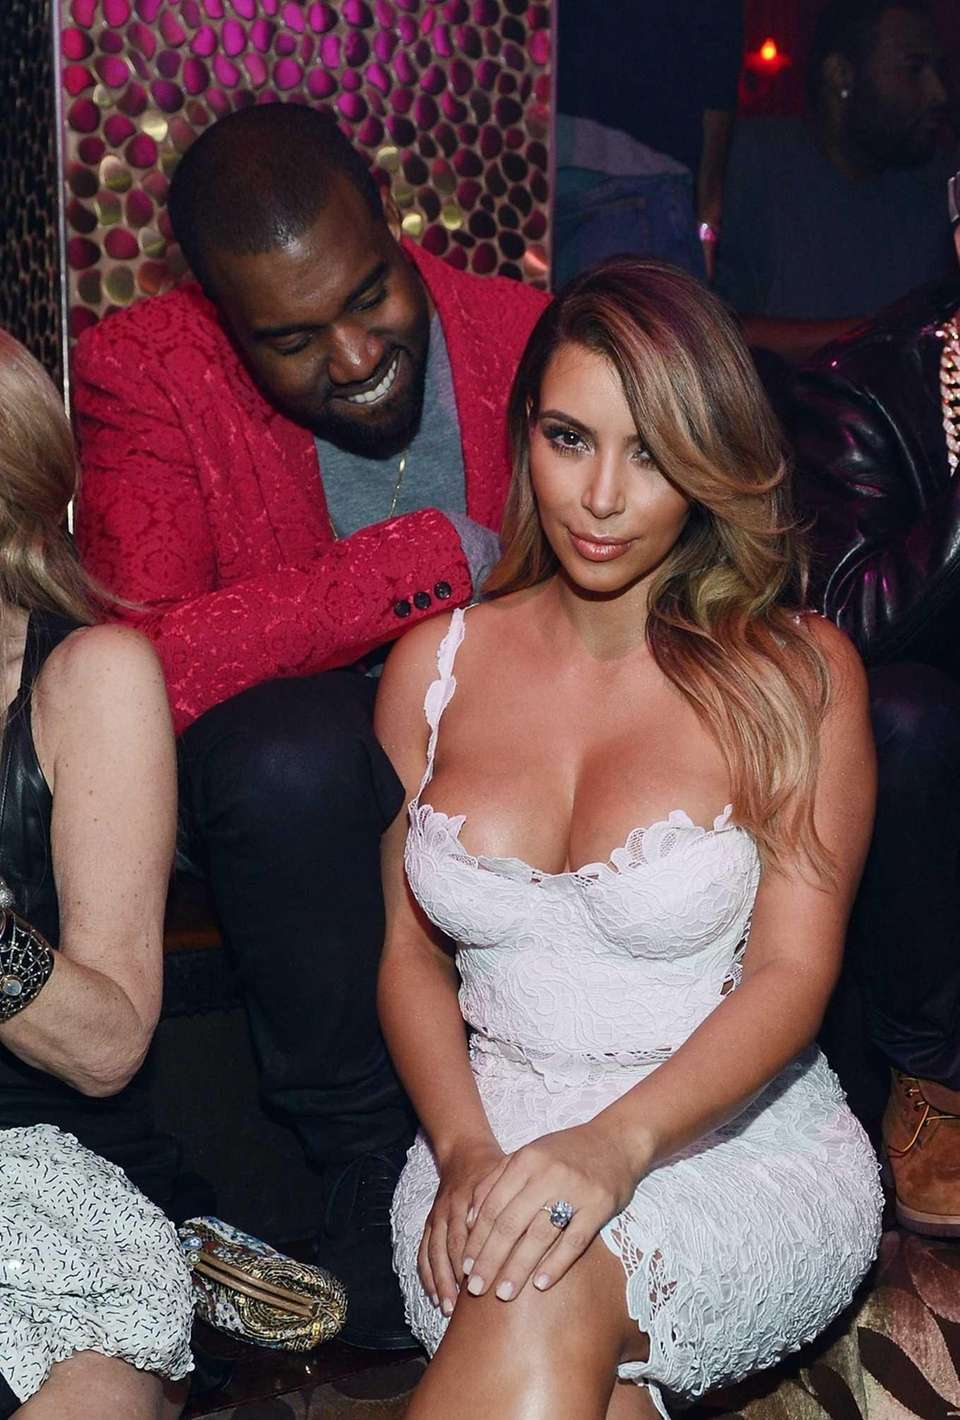 Kanye West and Kim Kardashian celebrate her birthday